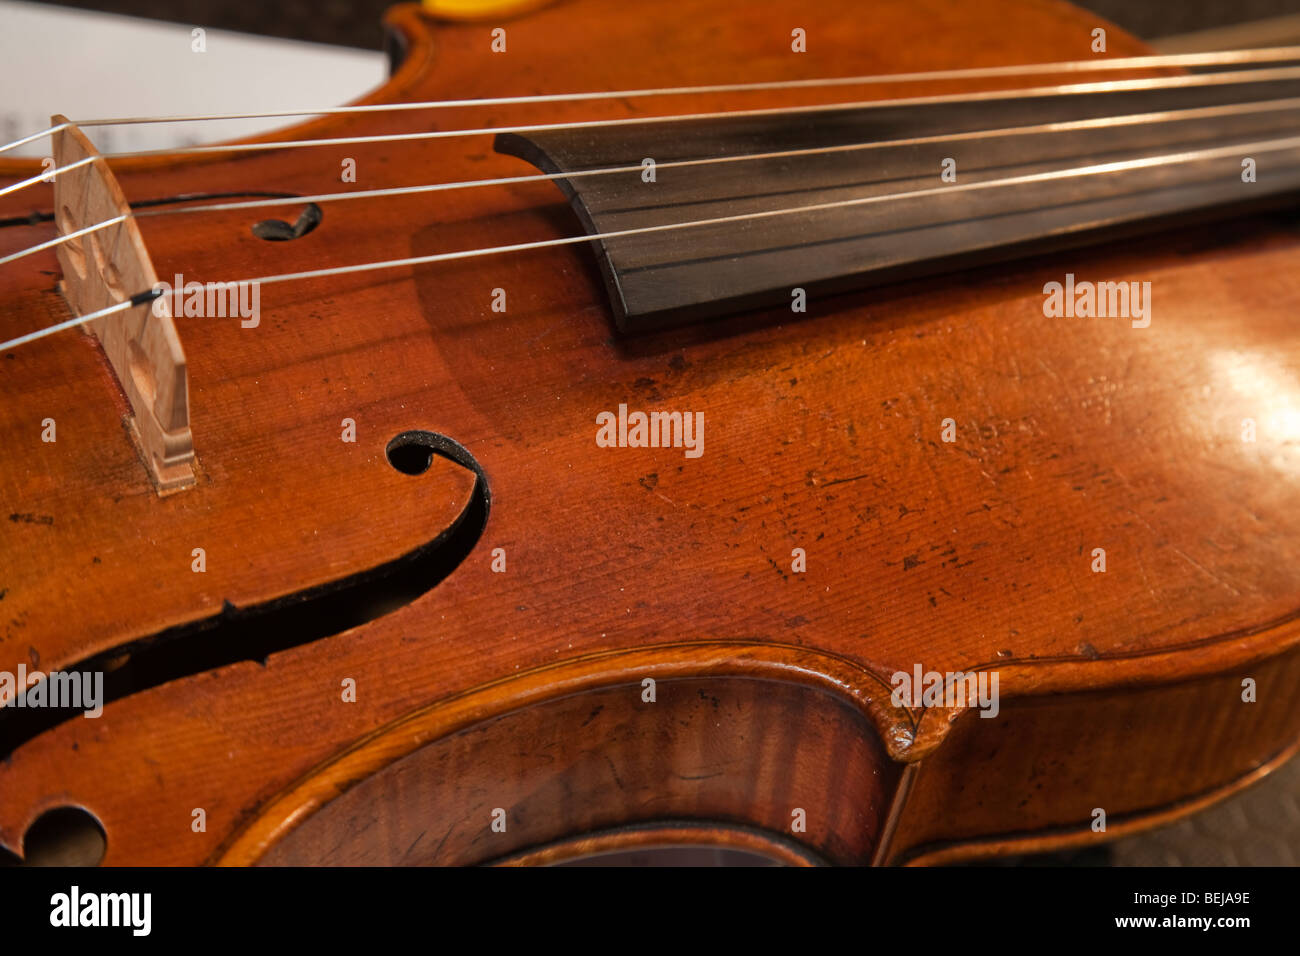 musical instruments violin - Stock Image